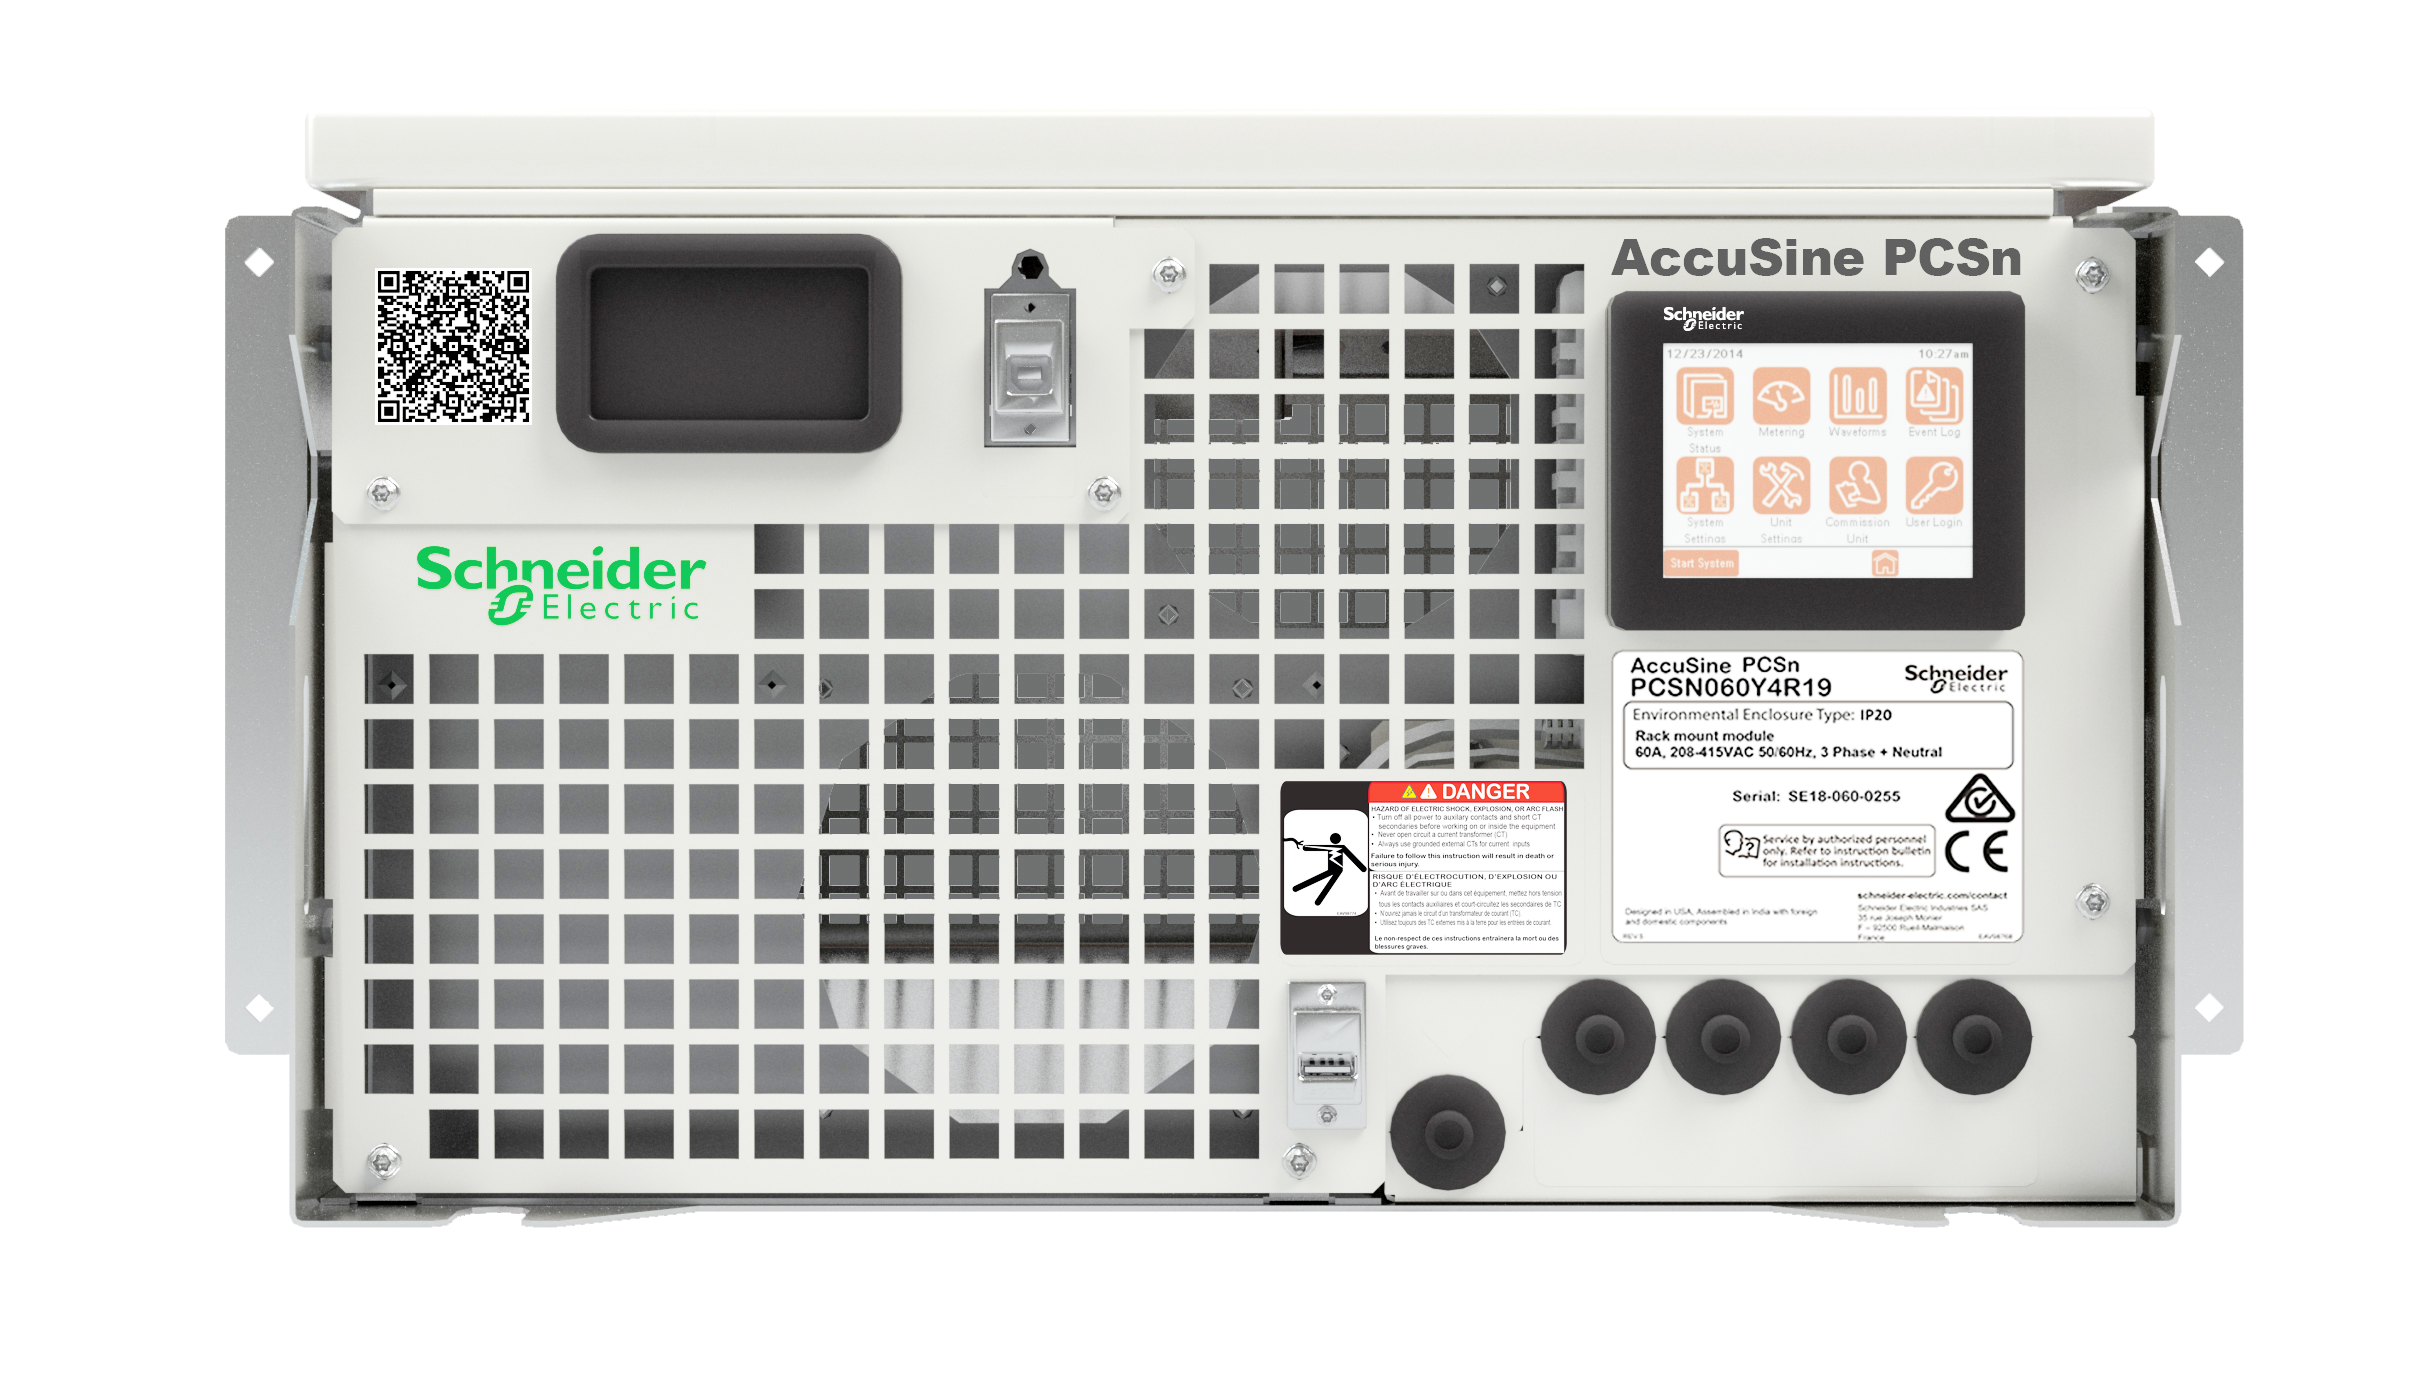 Schneider Electric's AccuSine PCSn active harmonic filter front rack